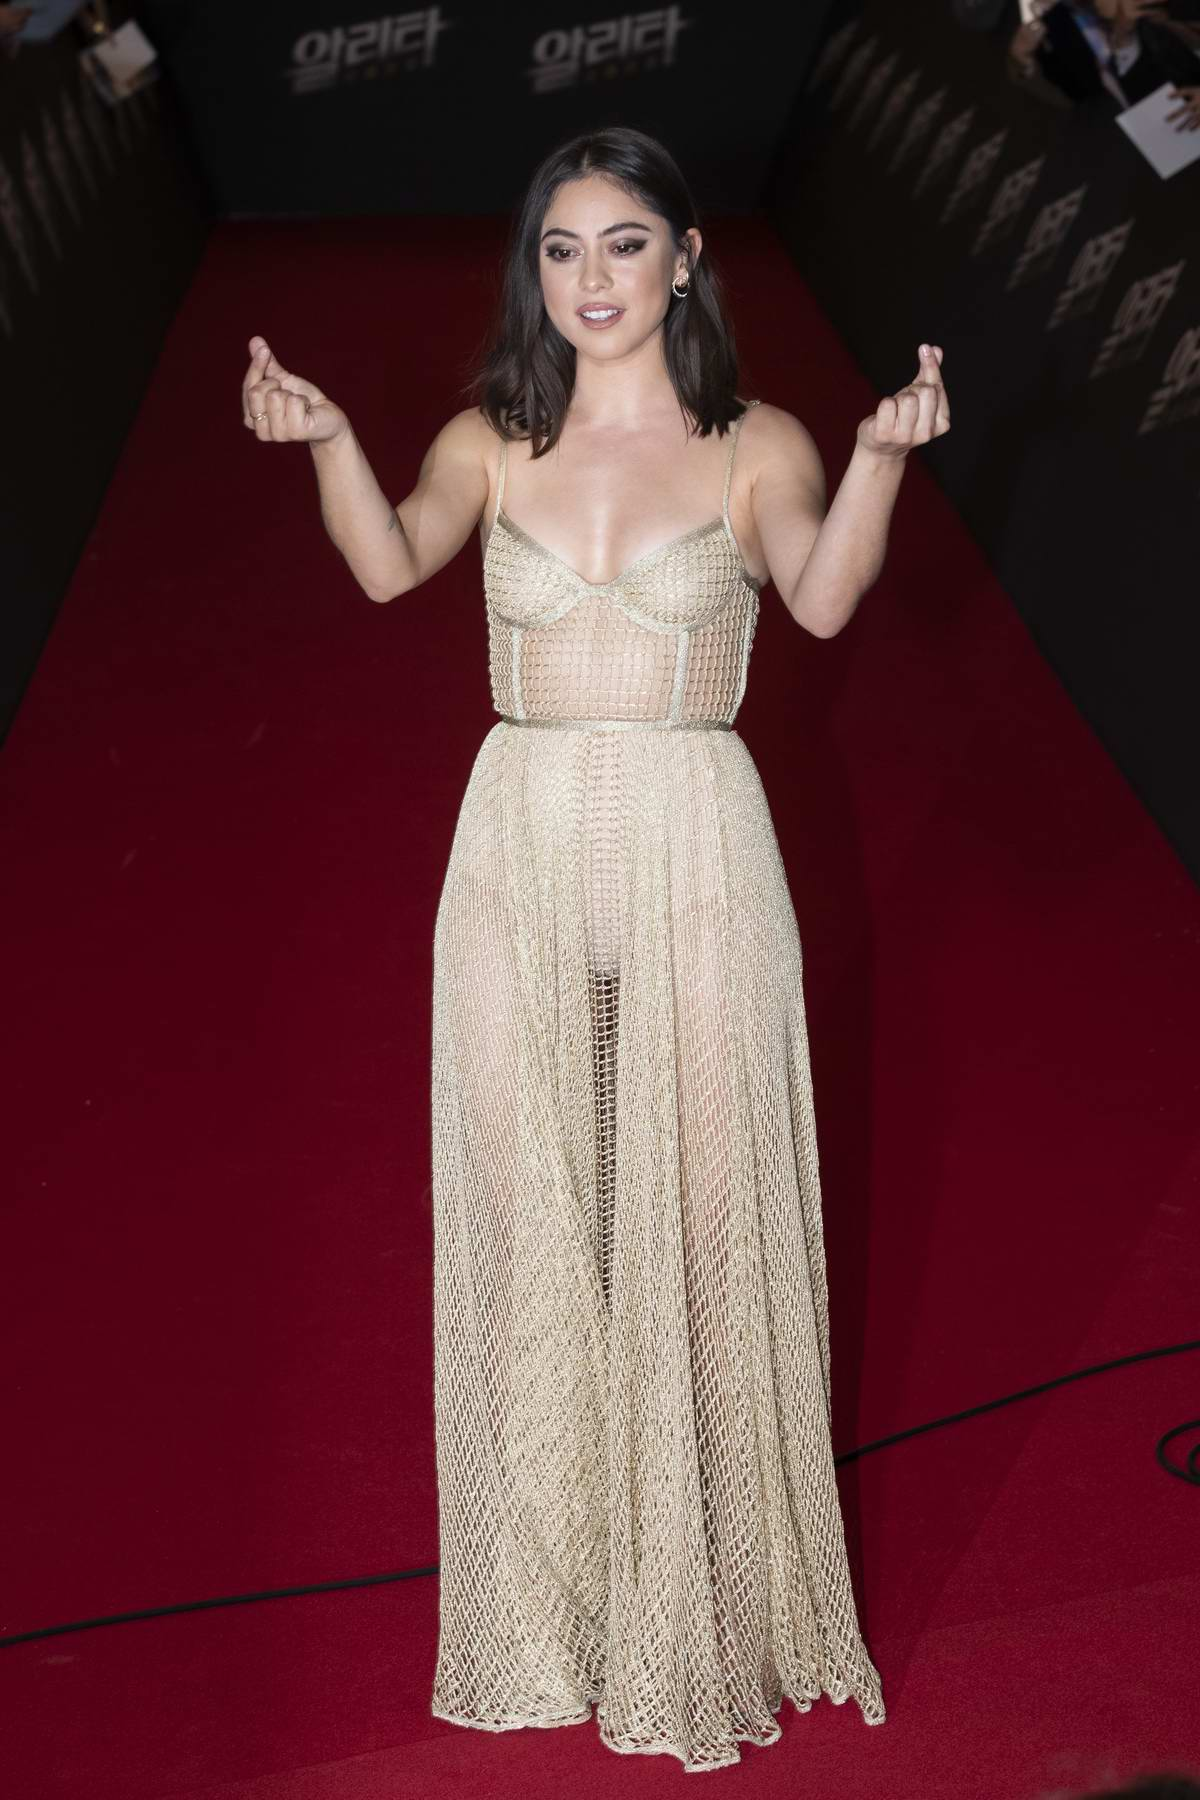 Rosa Salazar attends the Premiere of Alita: Battle Angel in Seoul, South Korea